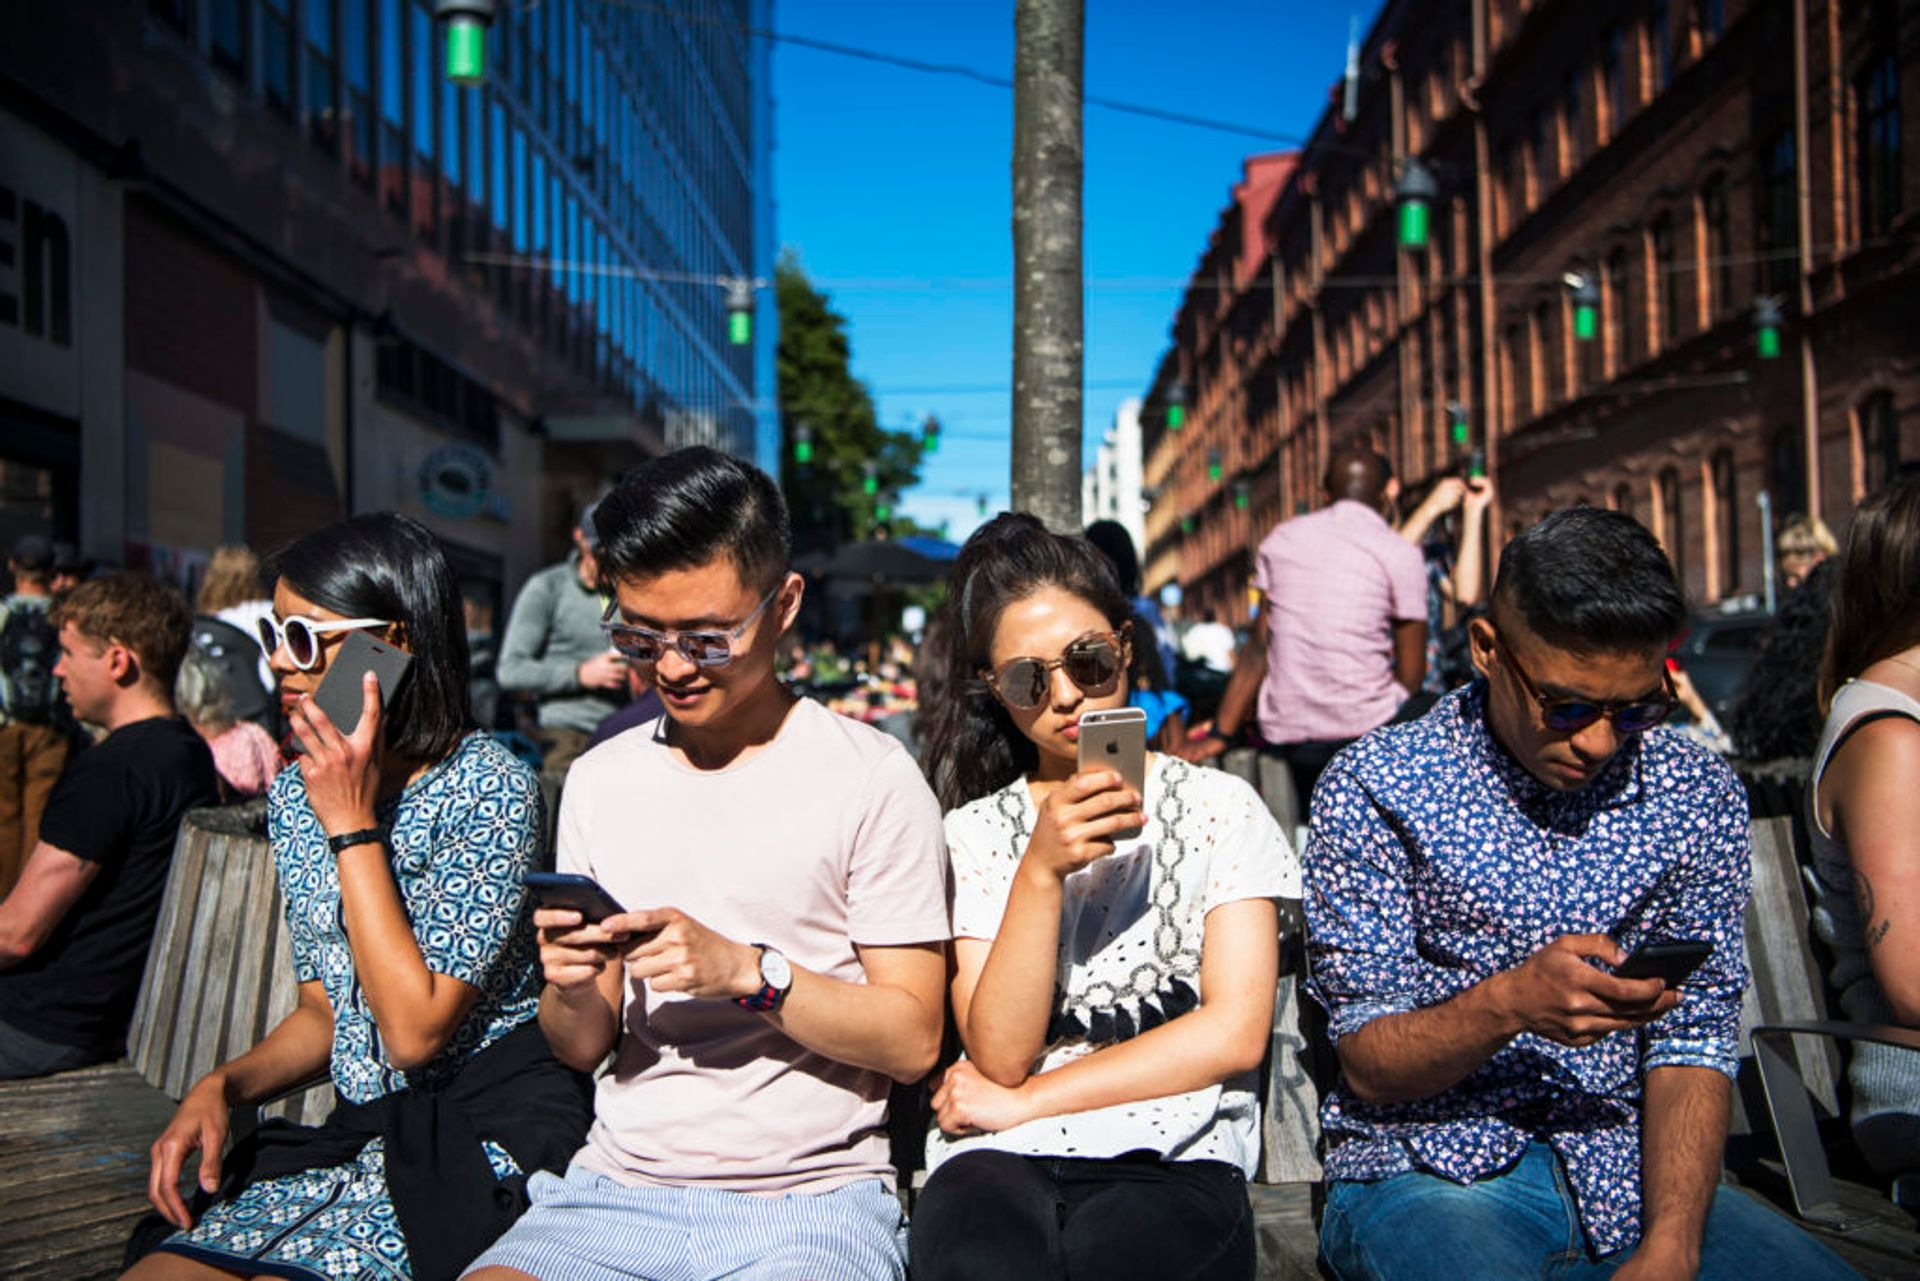 Four students sit together in a line, all looking at their mobile phones.